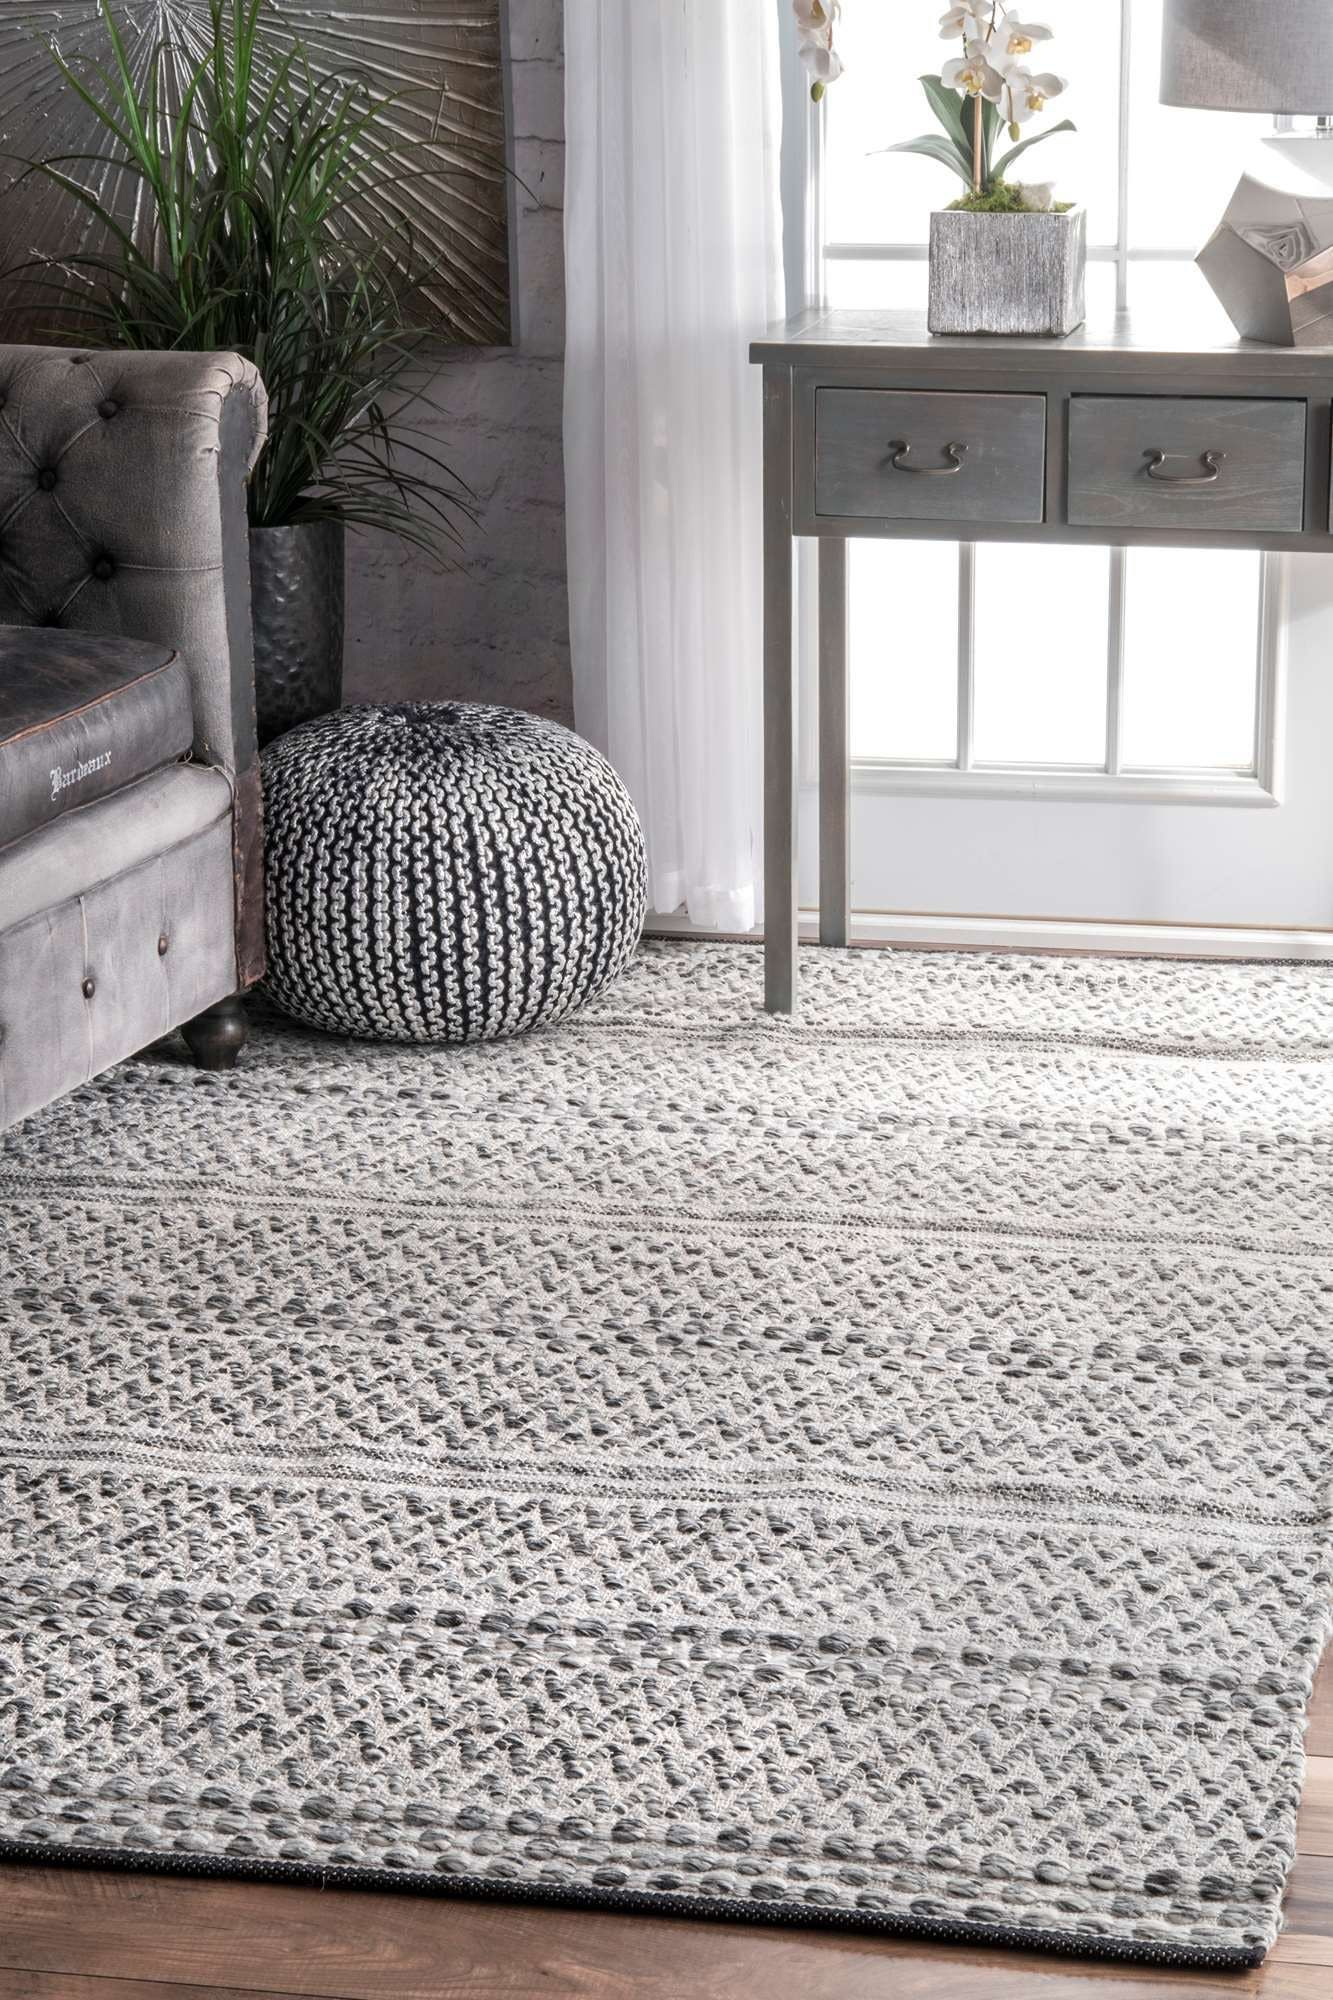 10 Actually Stylish Indoor Outdoor Rugs We Re Loving Right Now Rugs In Living Room Room Rugs Farmhouse Area Rugs